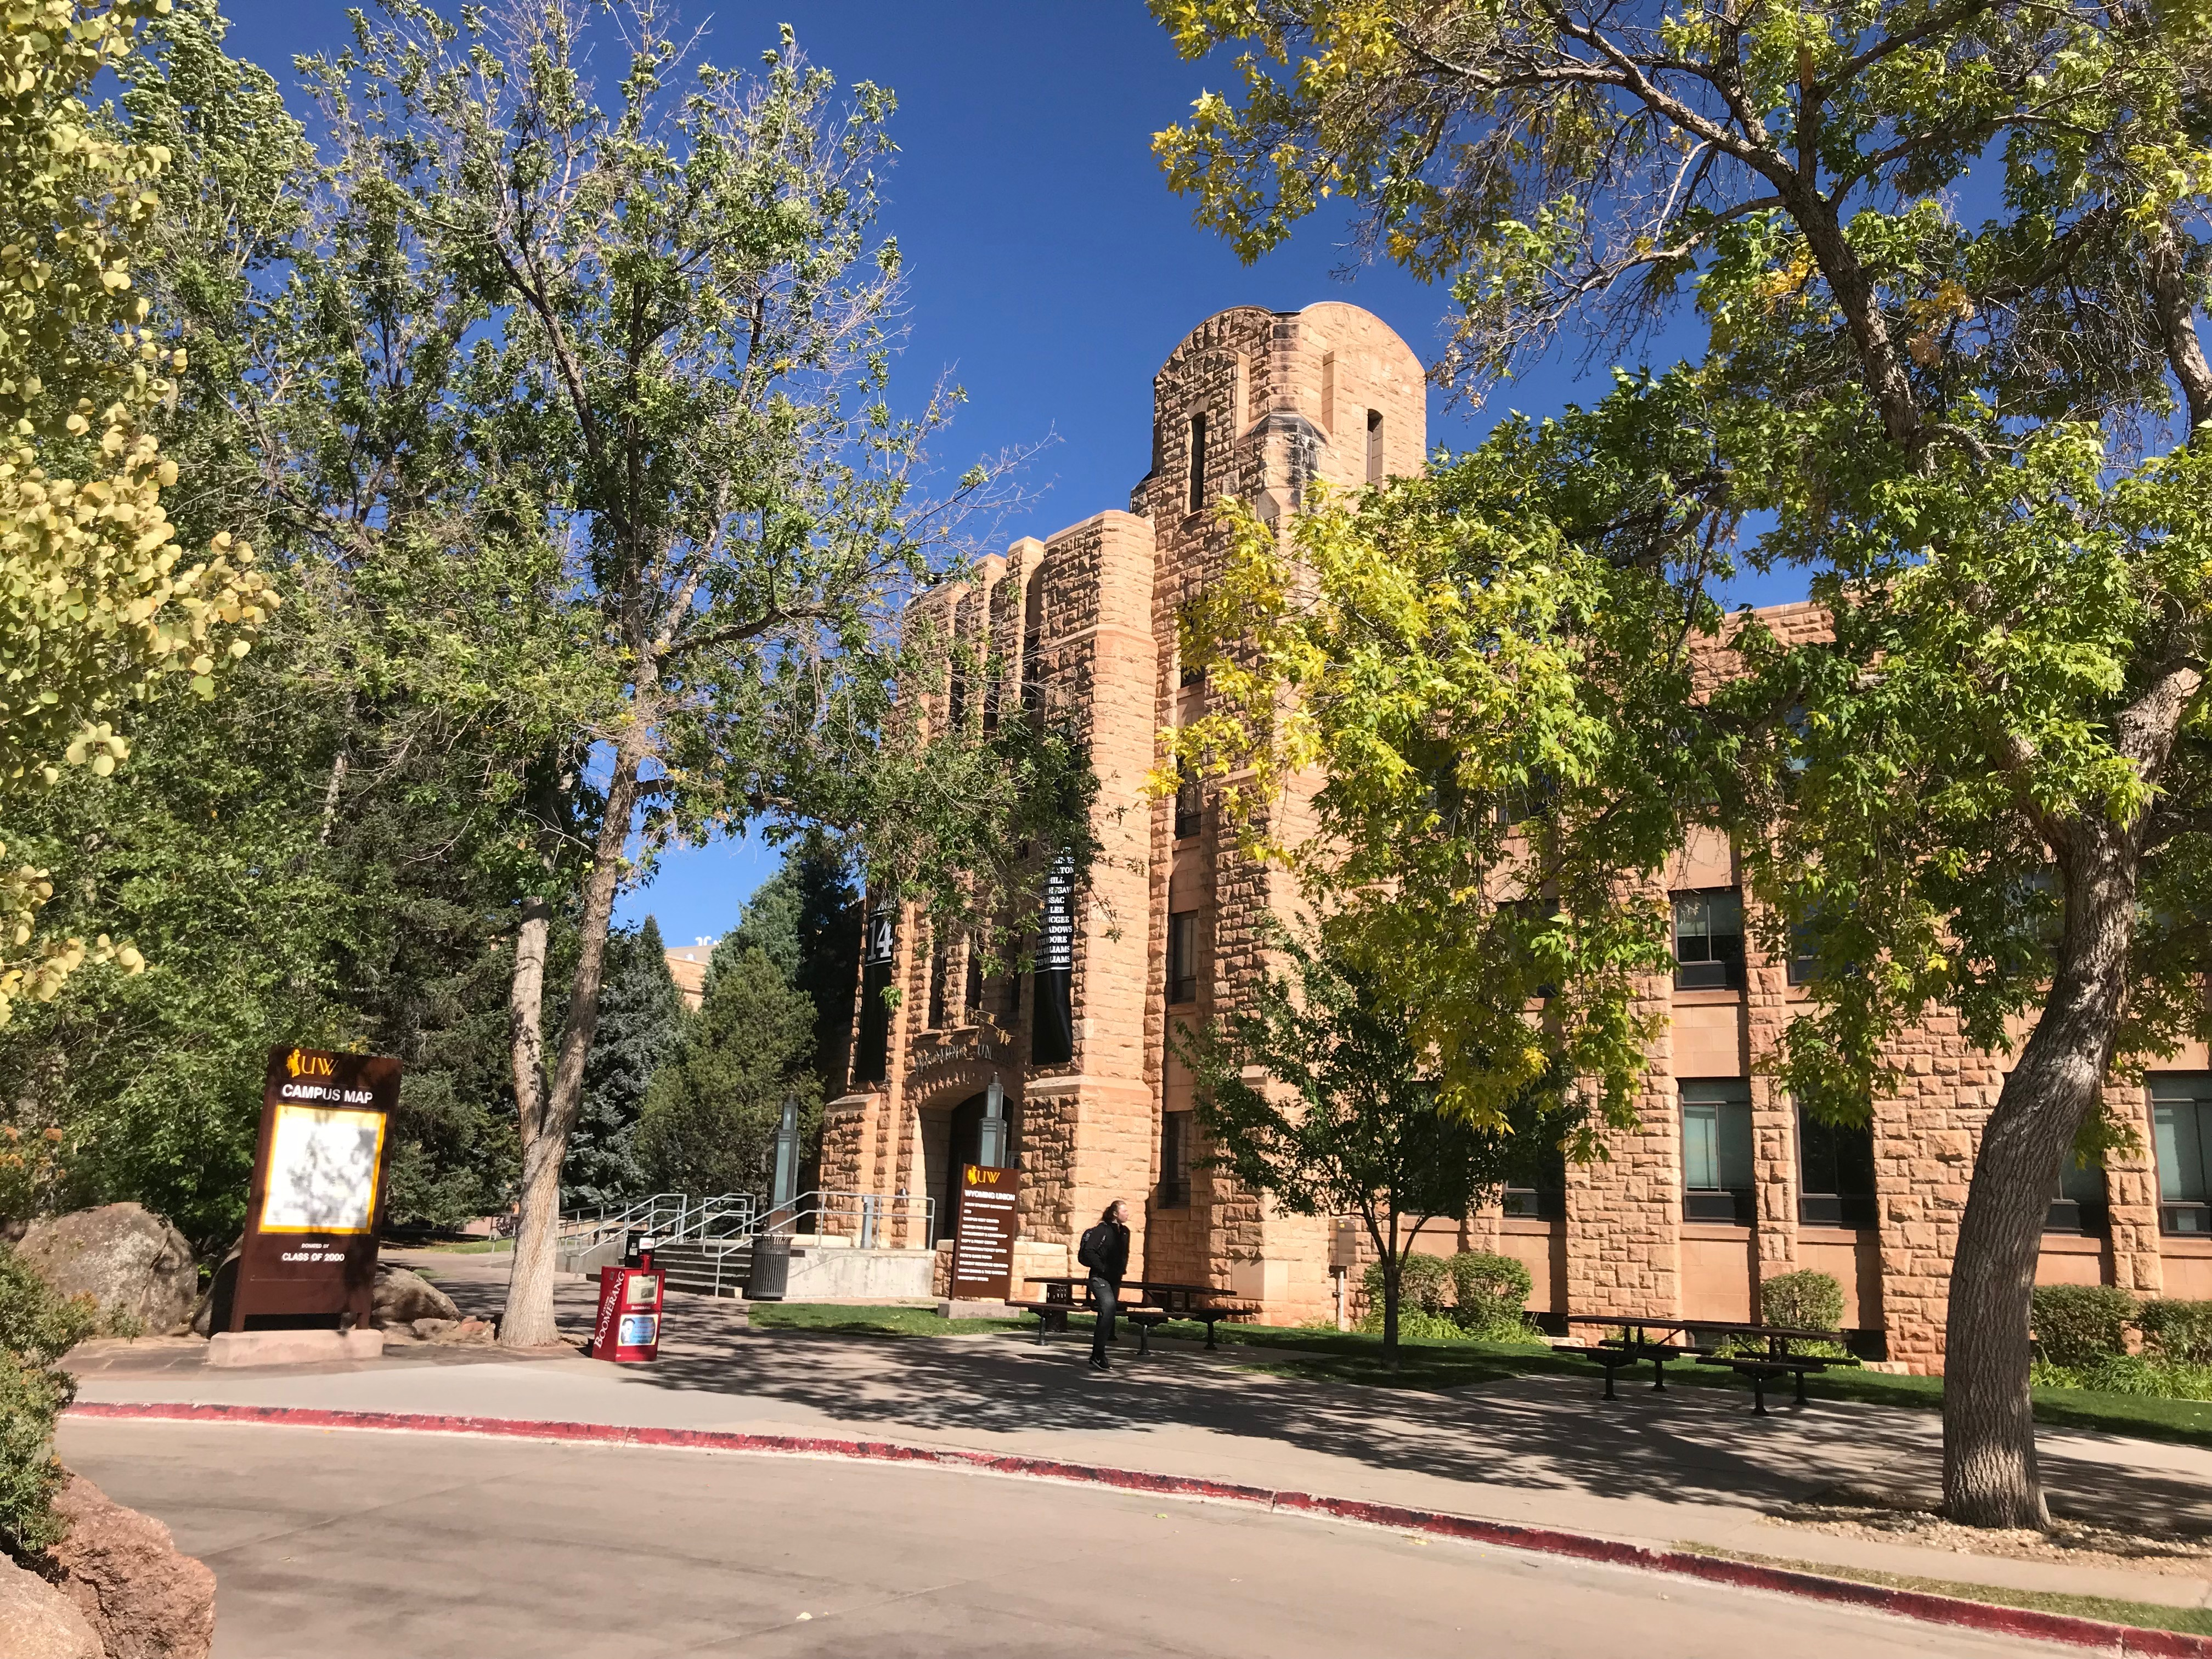 Move-In Day at U. Wyoming Features Staggered Schedule